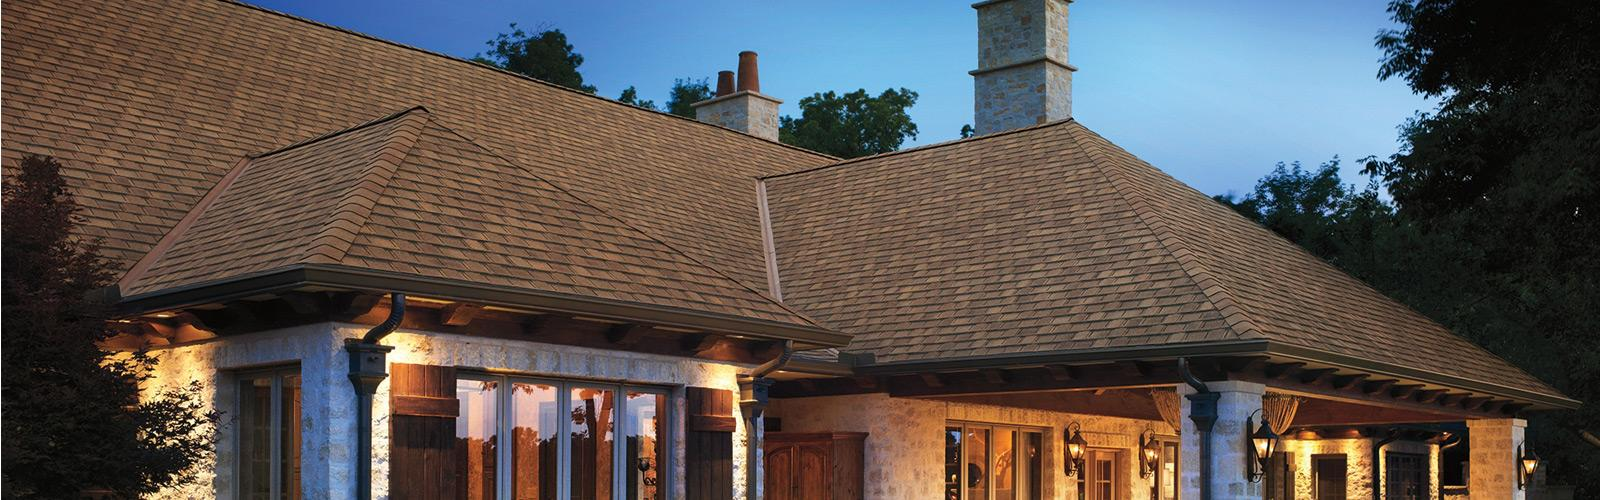 Home | Extreme Roofing